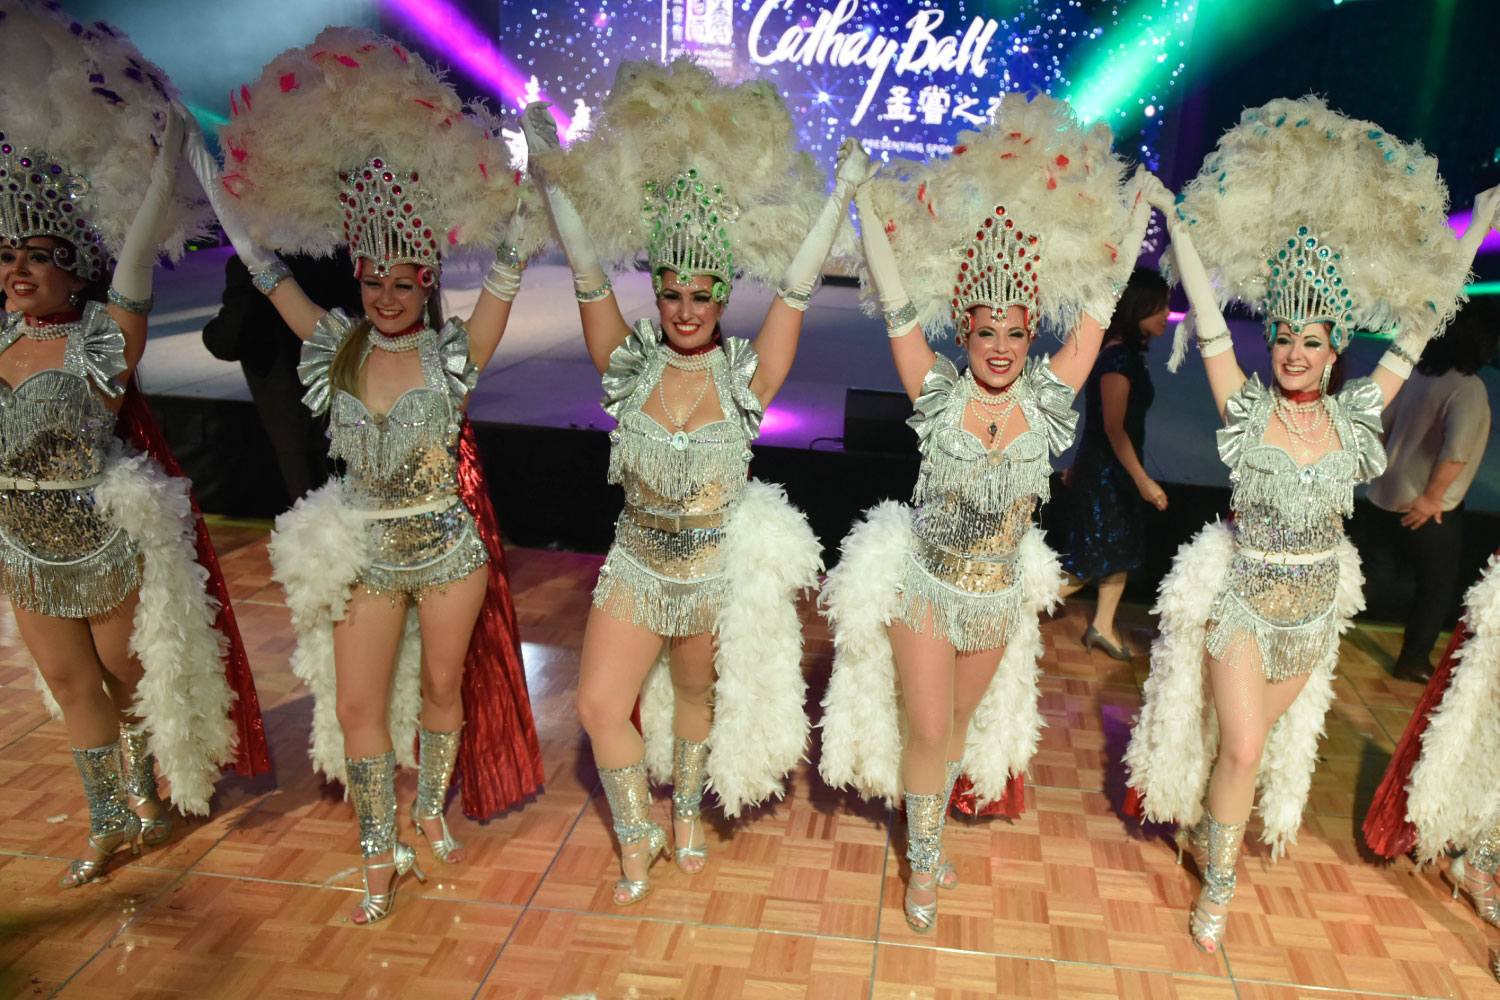 Cathay Ball Dancing Performance